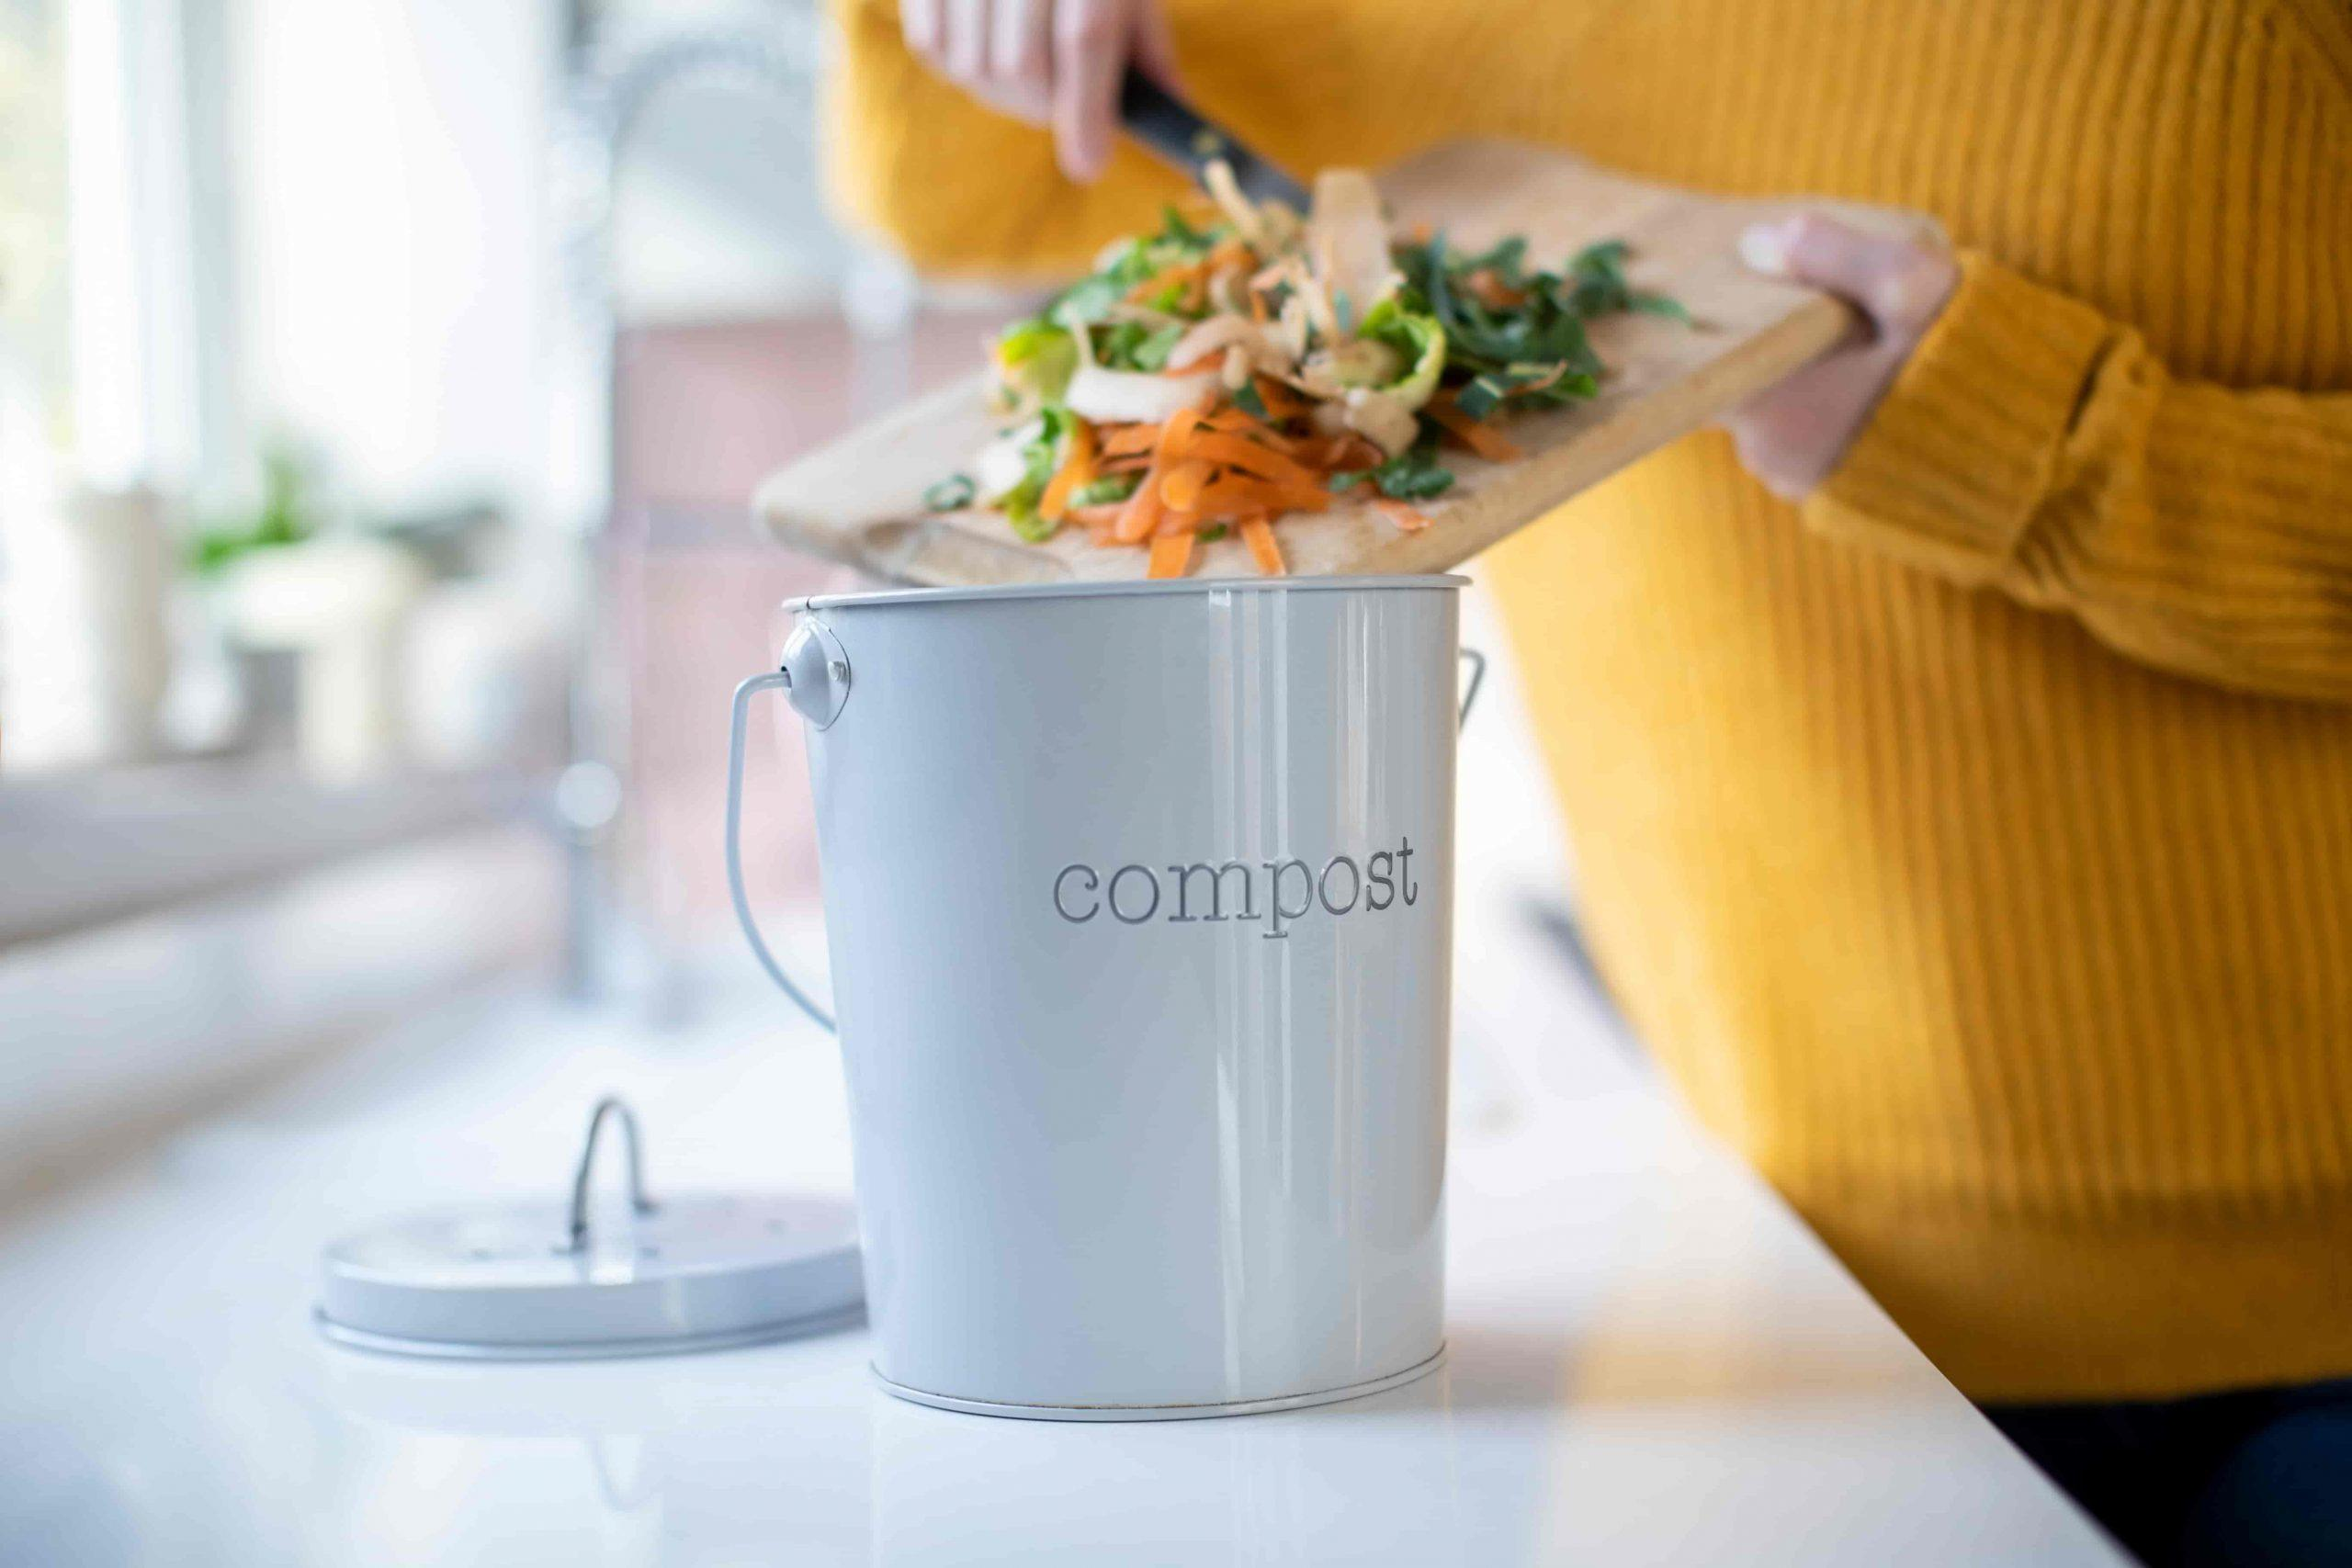 compost-at-home-2